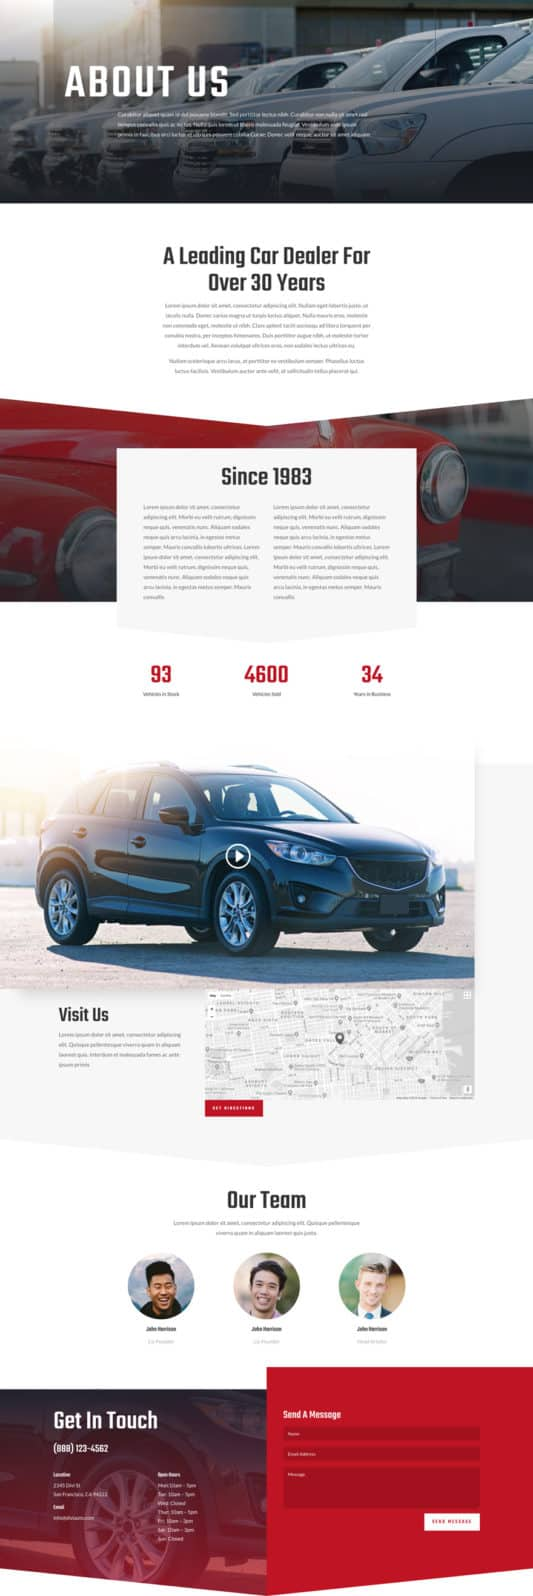 Car Dealer Web Design 1